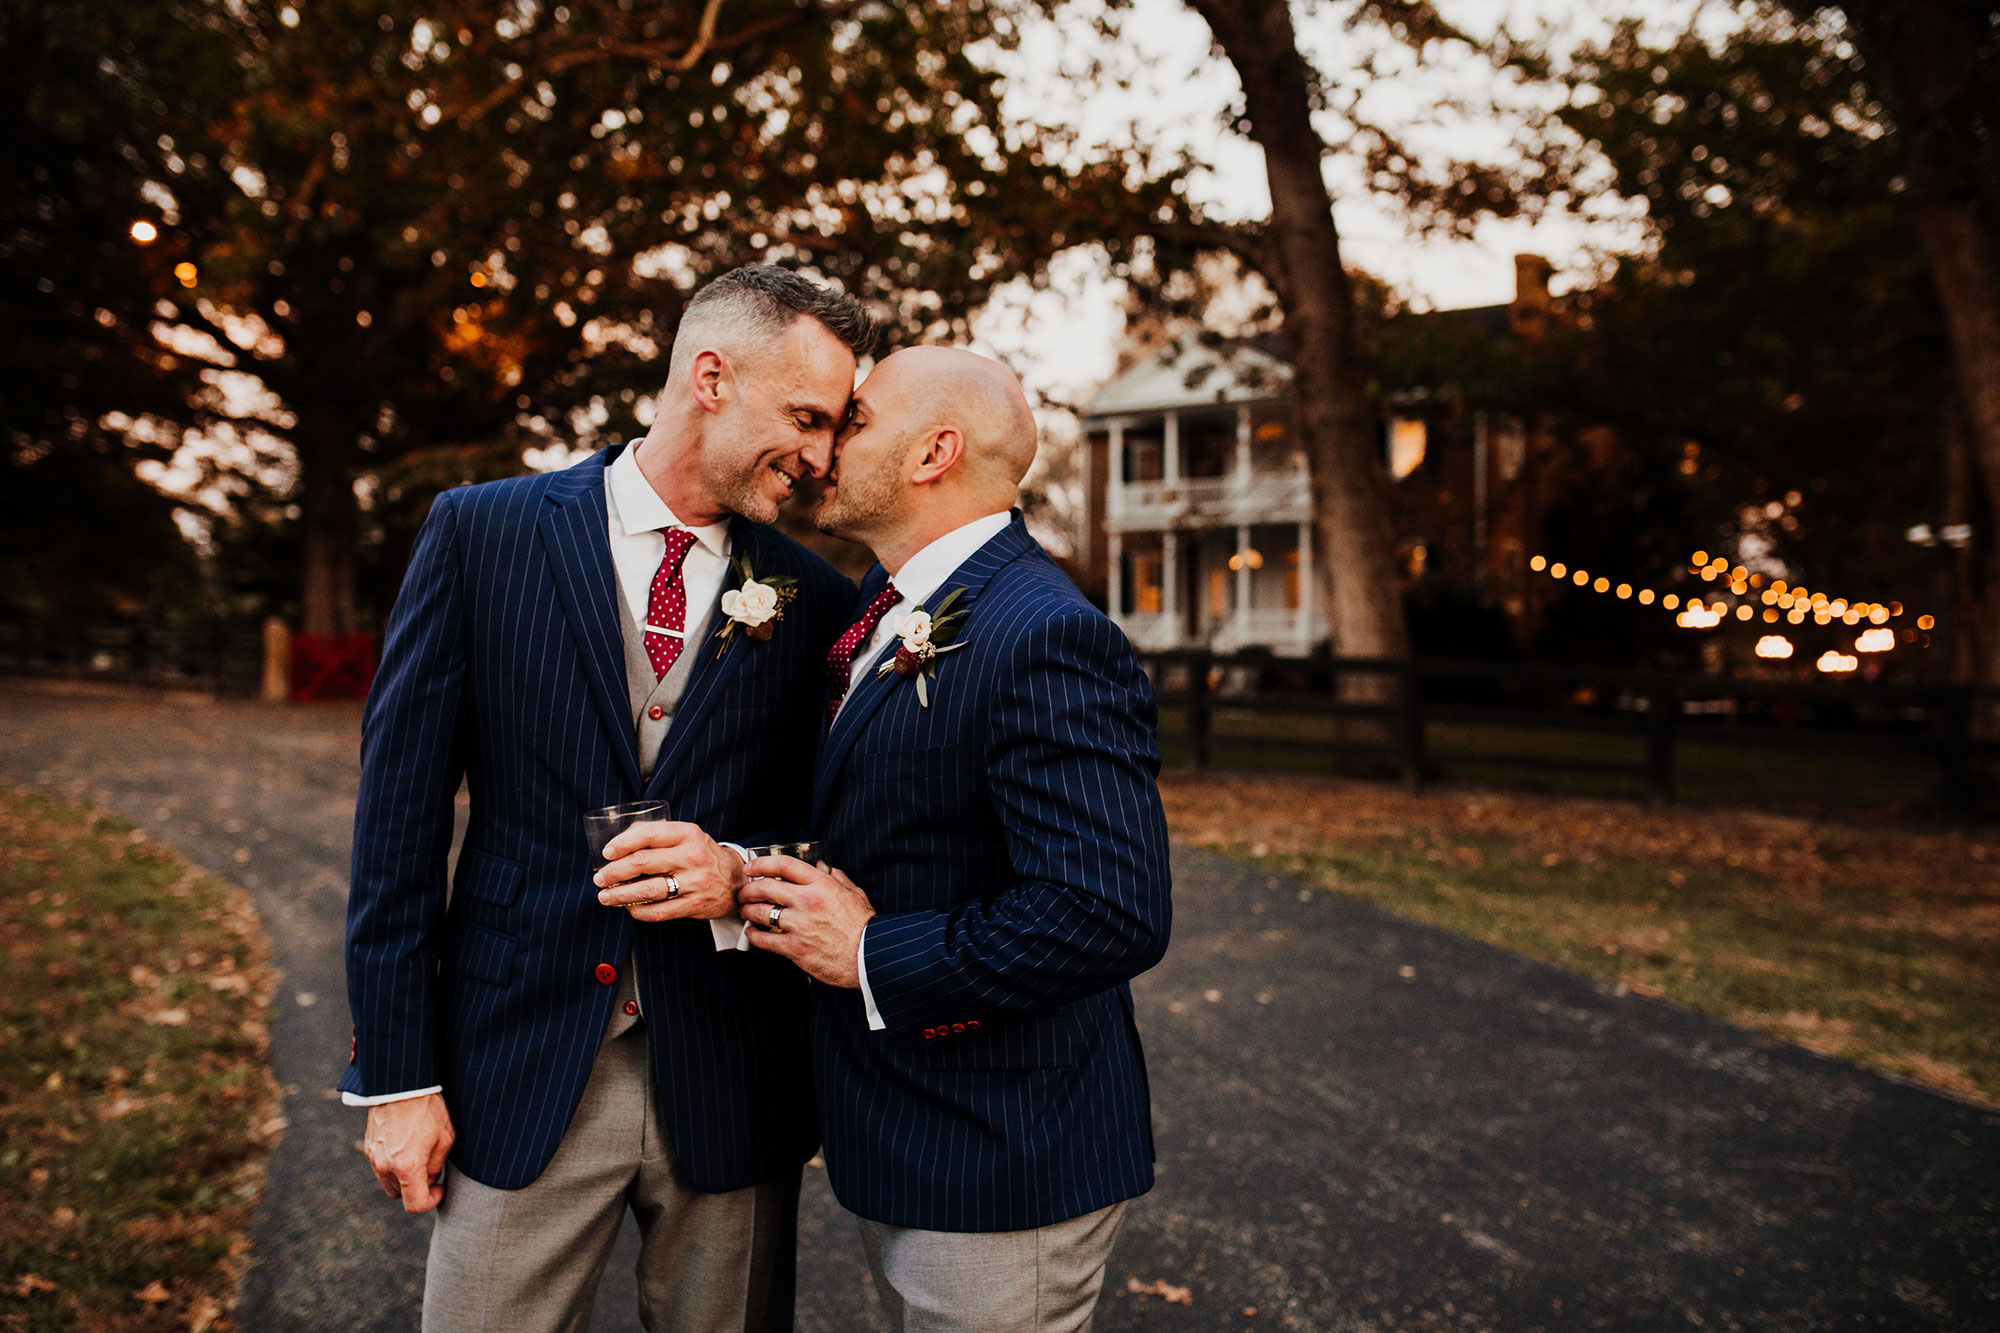 LGBTQ Louisville Kentucky Wedding at Hermitage Farm Crystal Ludwick Photo kiss on cheek